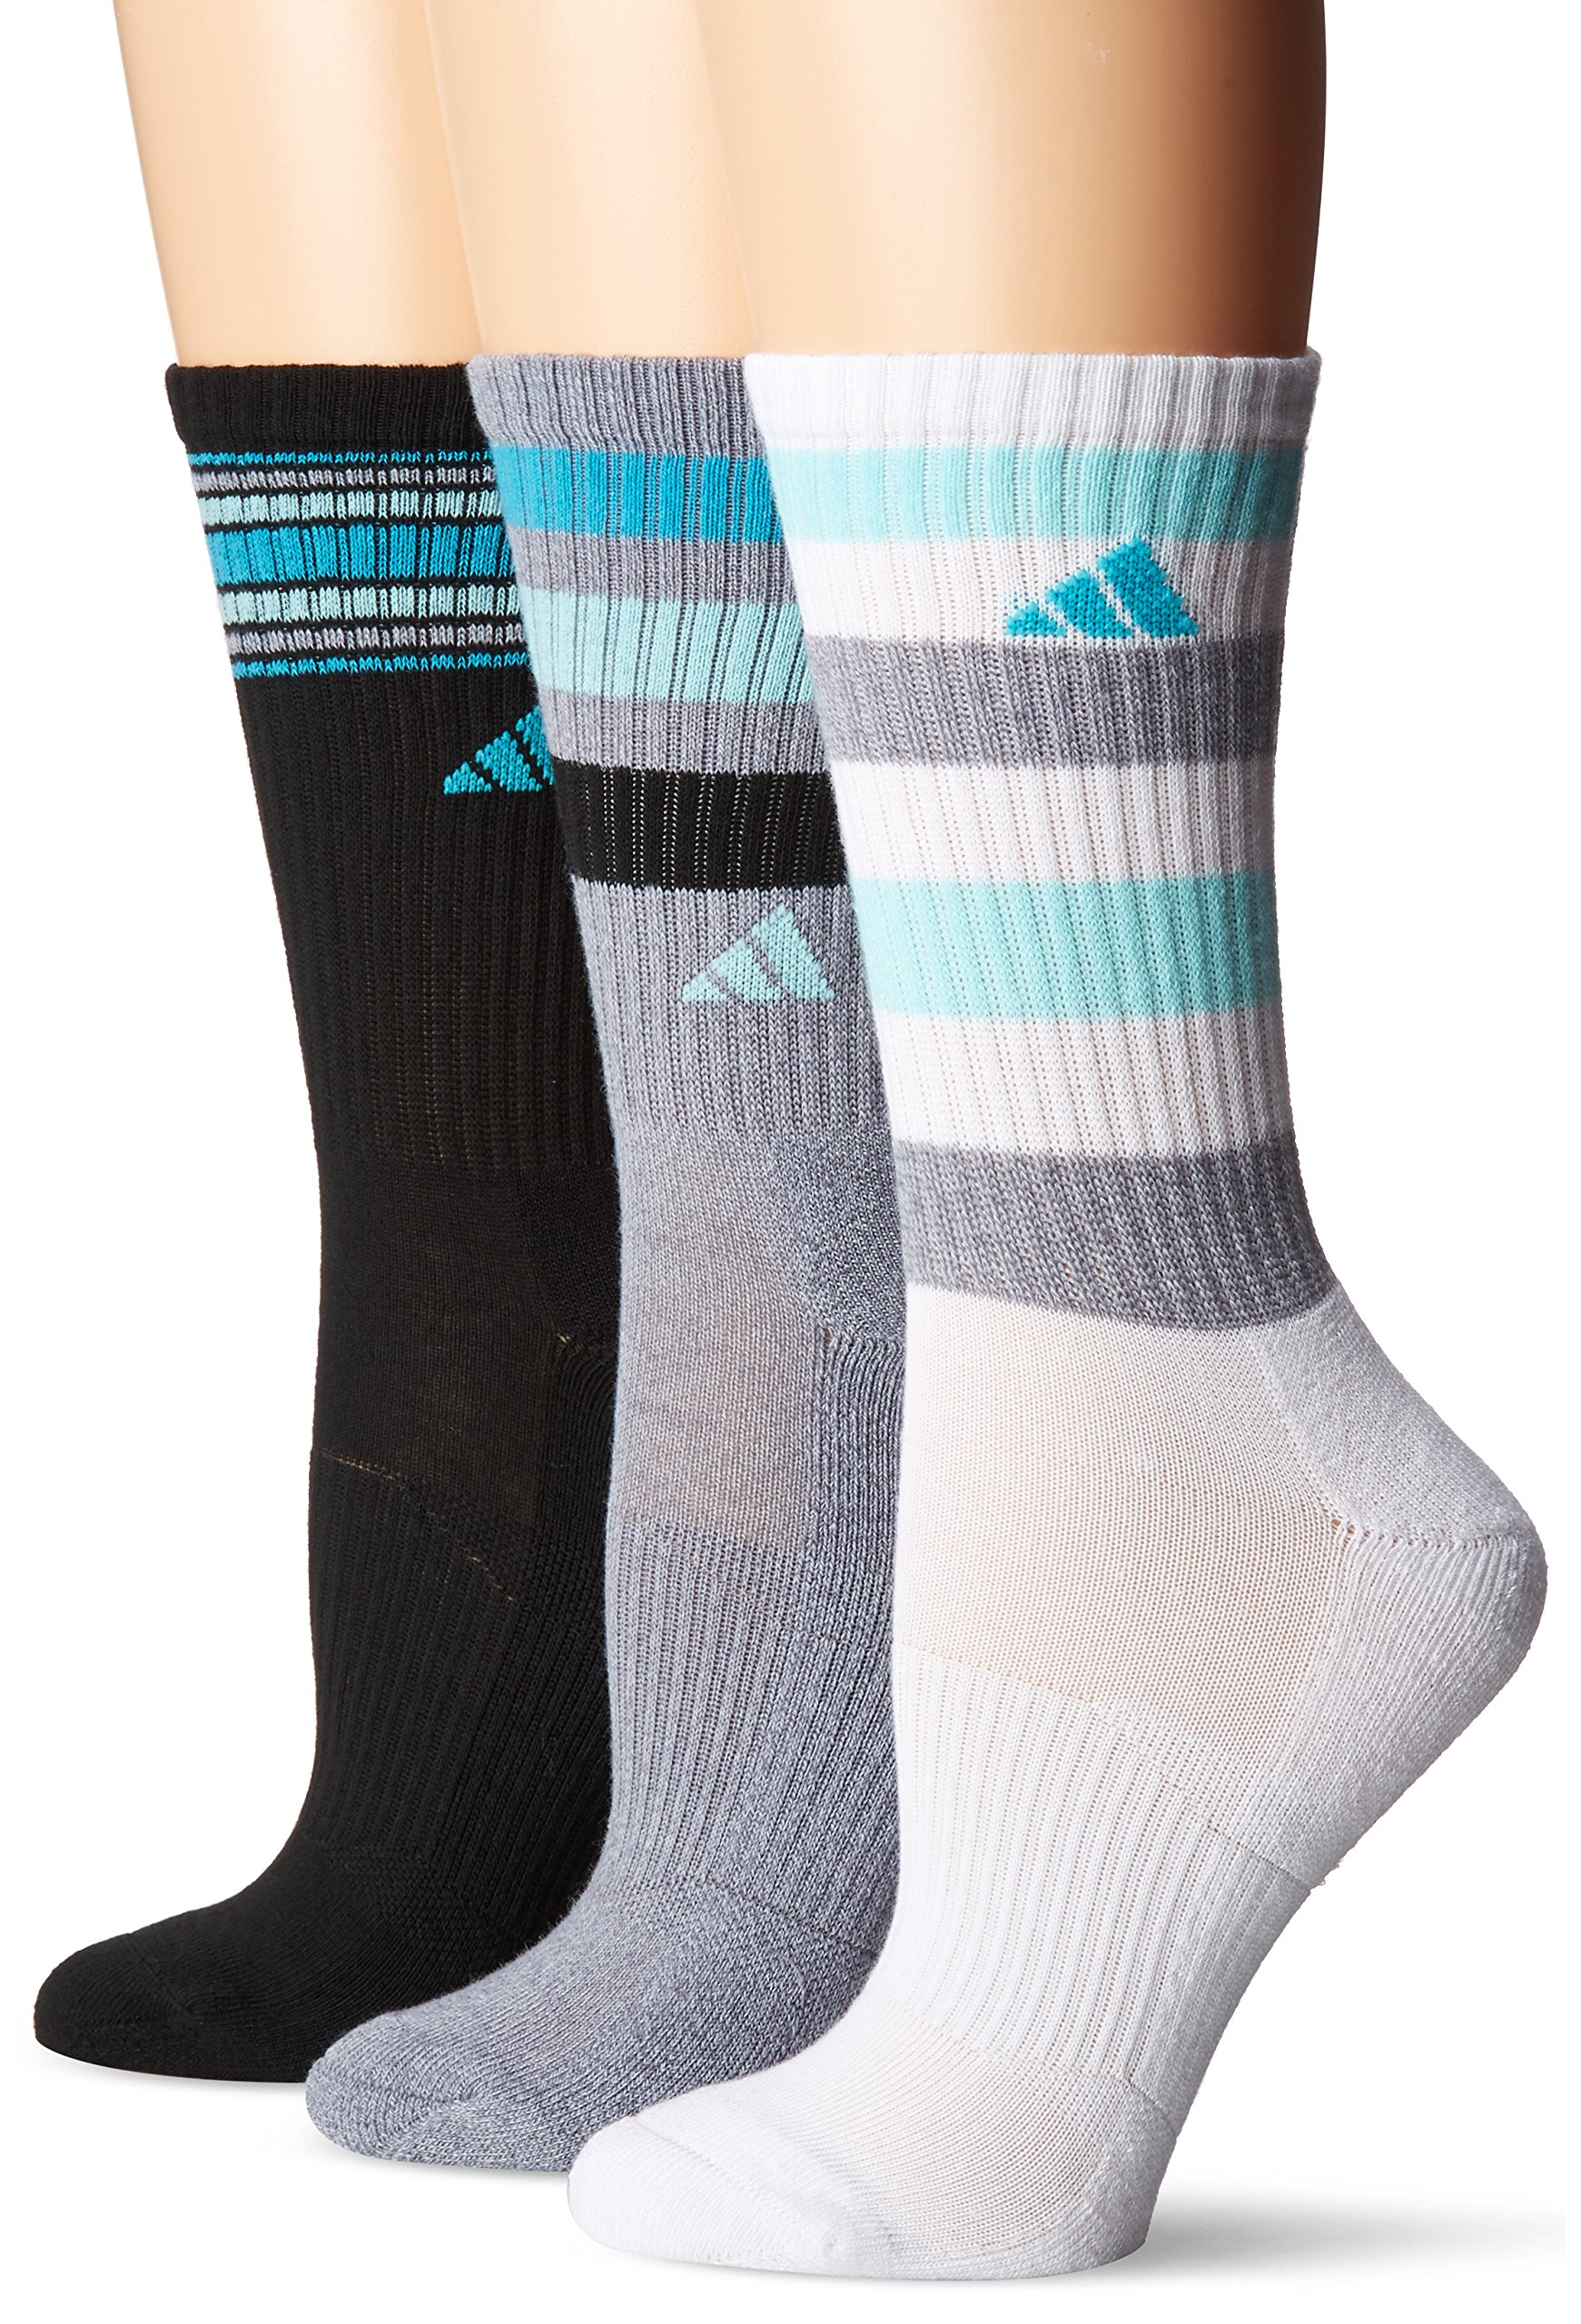 adidas Women's Cushioned 3-Pack Crew Socks, Grey Clear Onix Marl/Energy Aqua/Energy Blue/Black/White, Medium